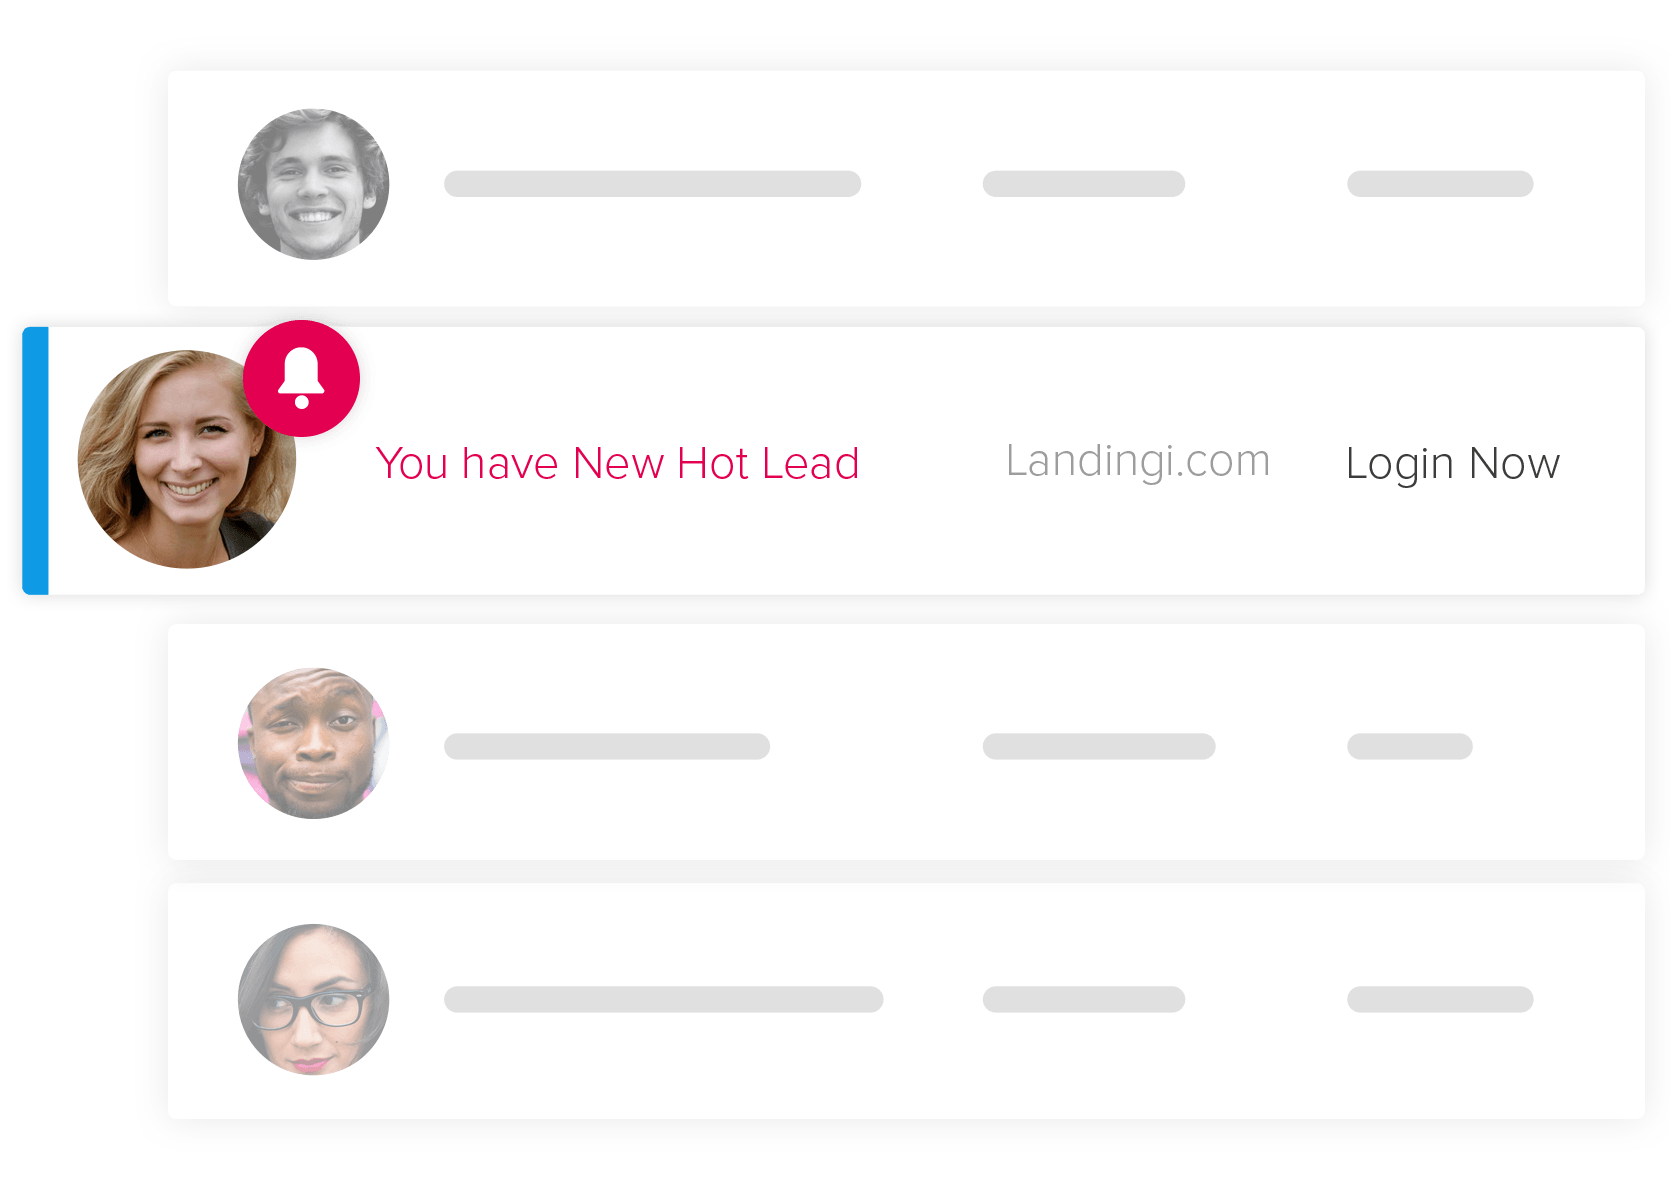 Automate your landing pag lead notyfications